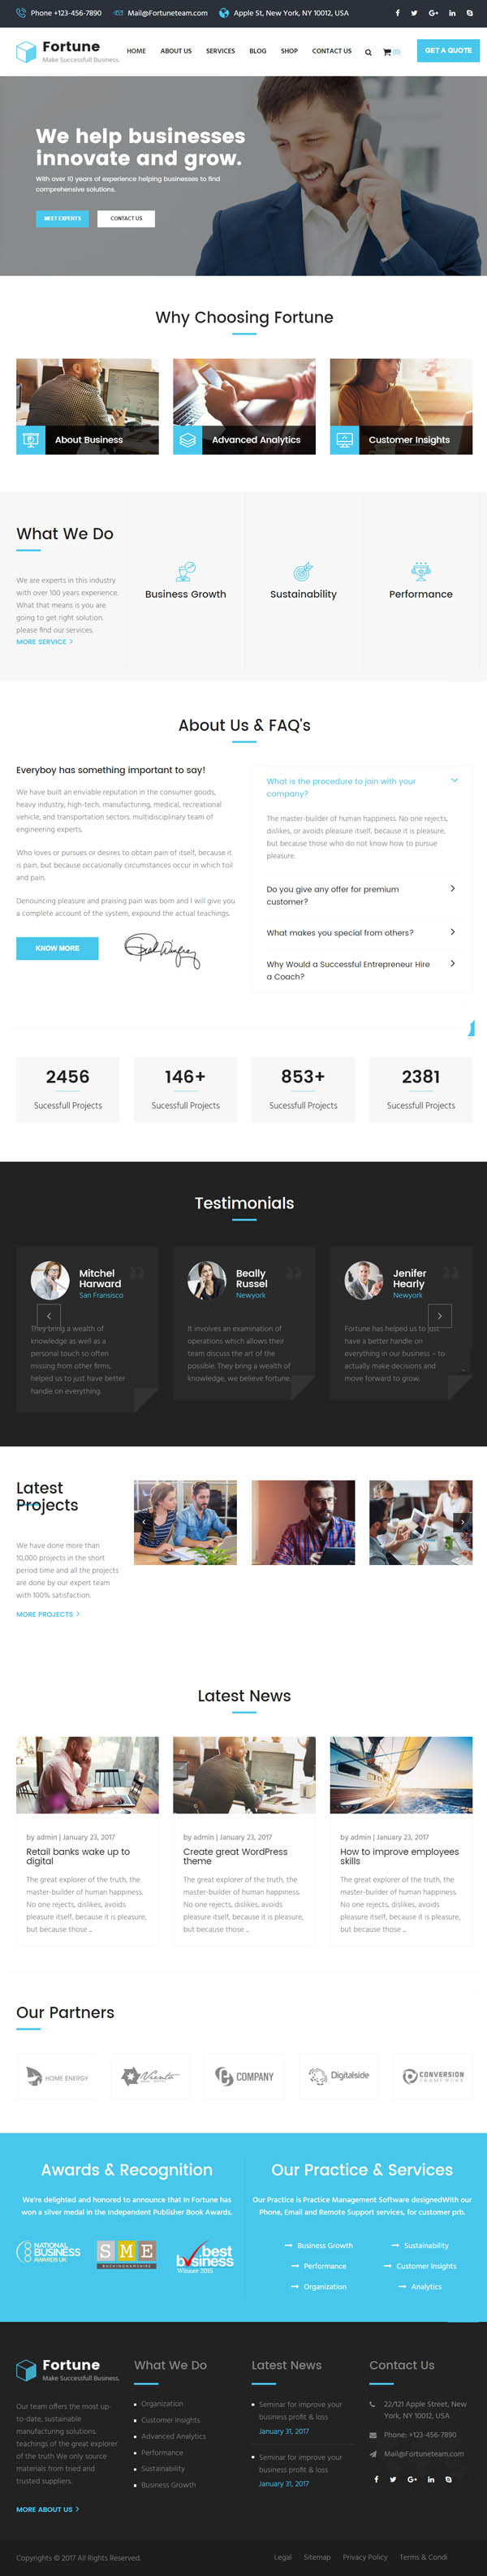 Fortune : Business Consulting and Professional Services WordPress Theme